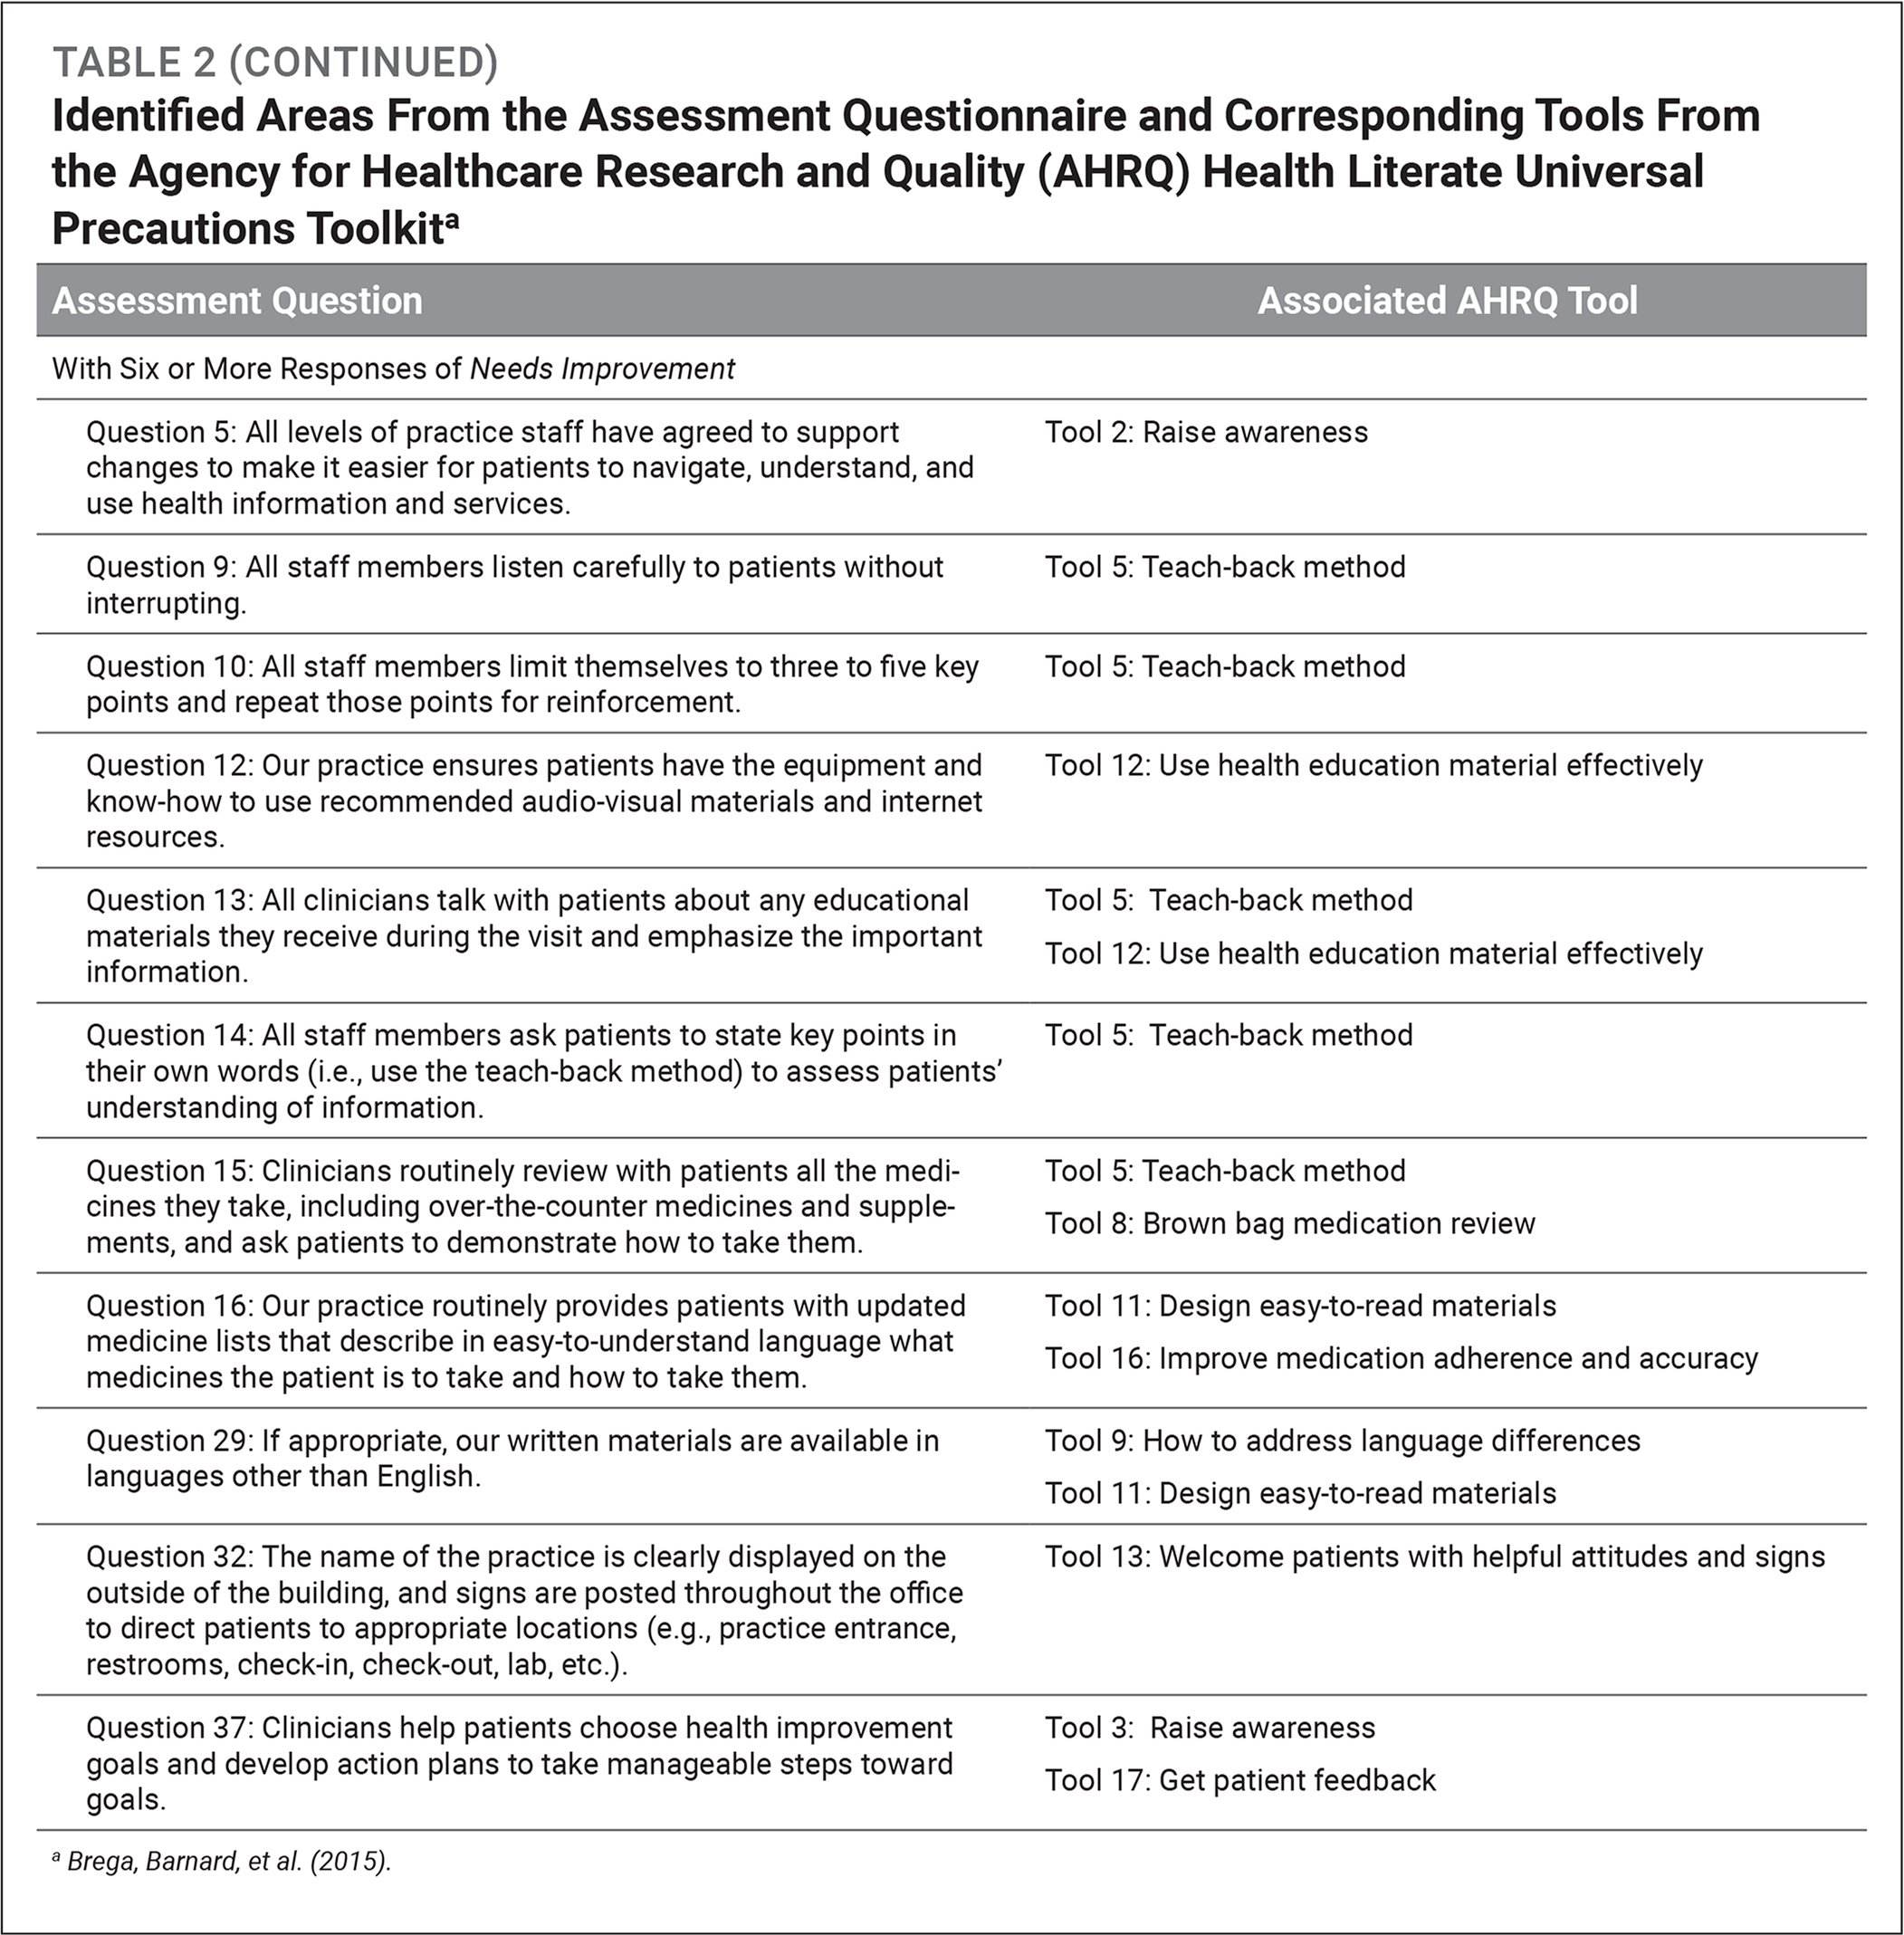 Identified Areas From the Assessment Questionnaire and Corresponding Tools From the Agency for Healthcare Research and Quality (AHRQ) Health Literate Universal Precautions Toolkita